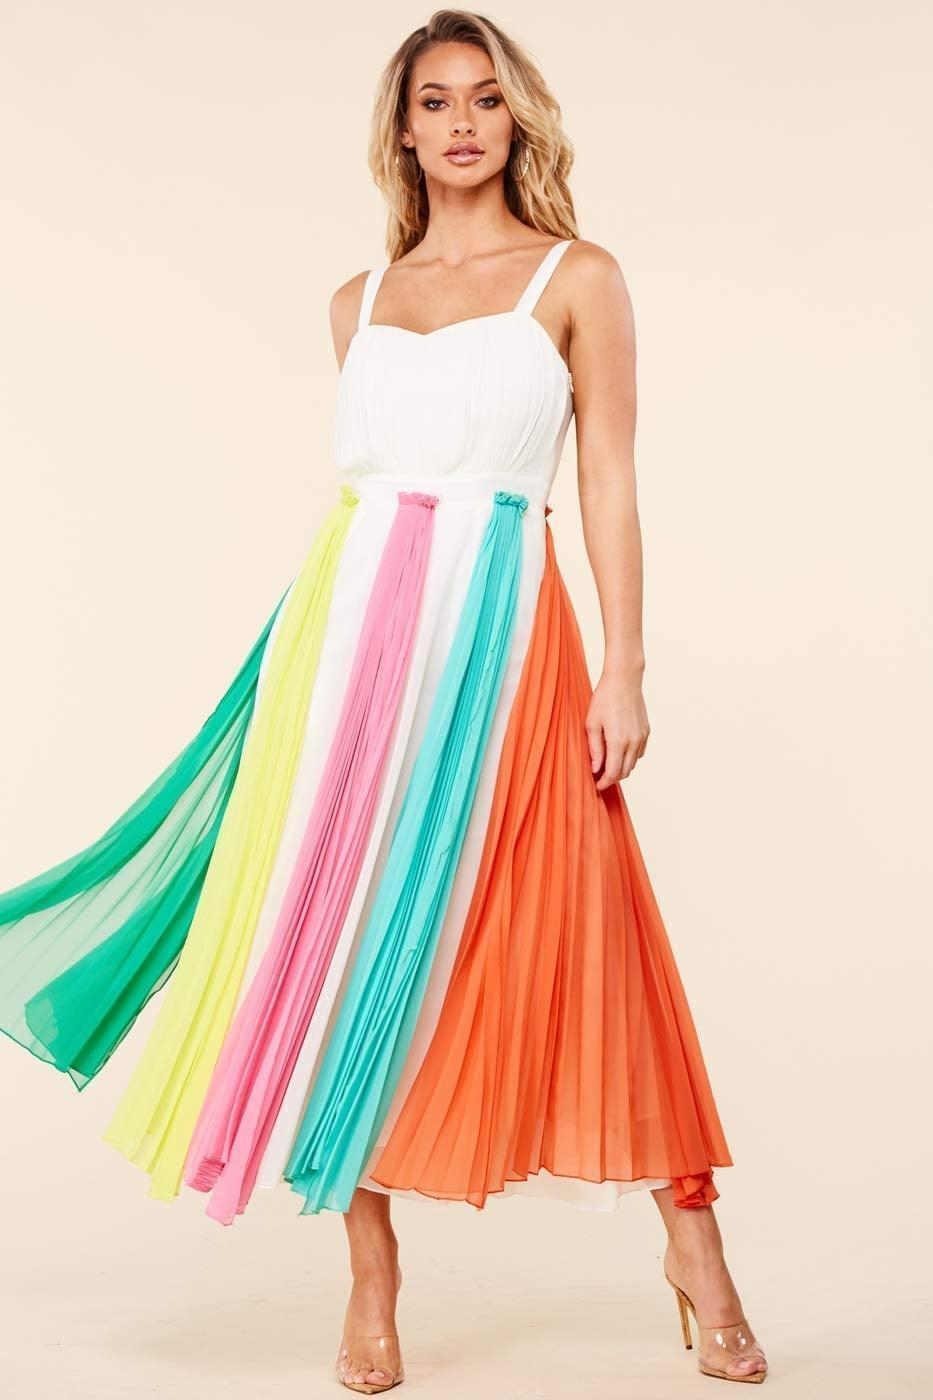 <p>Celebrate your love for color with this gorgeous <span>Mirelle M. Chiffon Colorful Church Dress</span> ($130).</p>